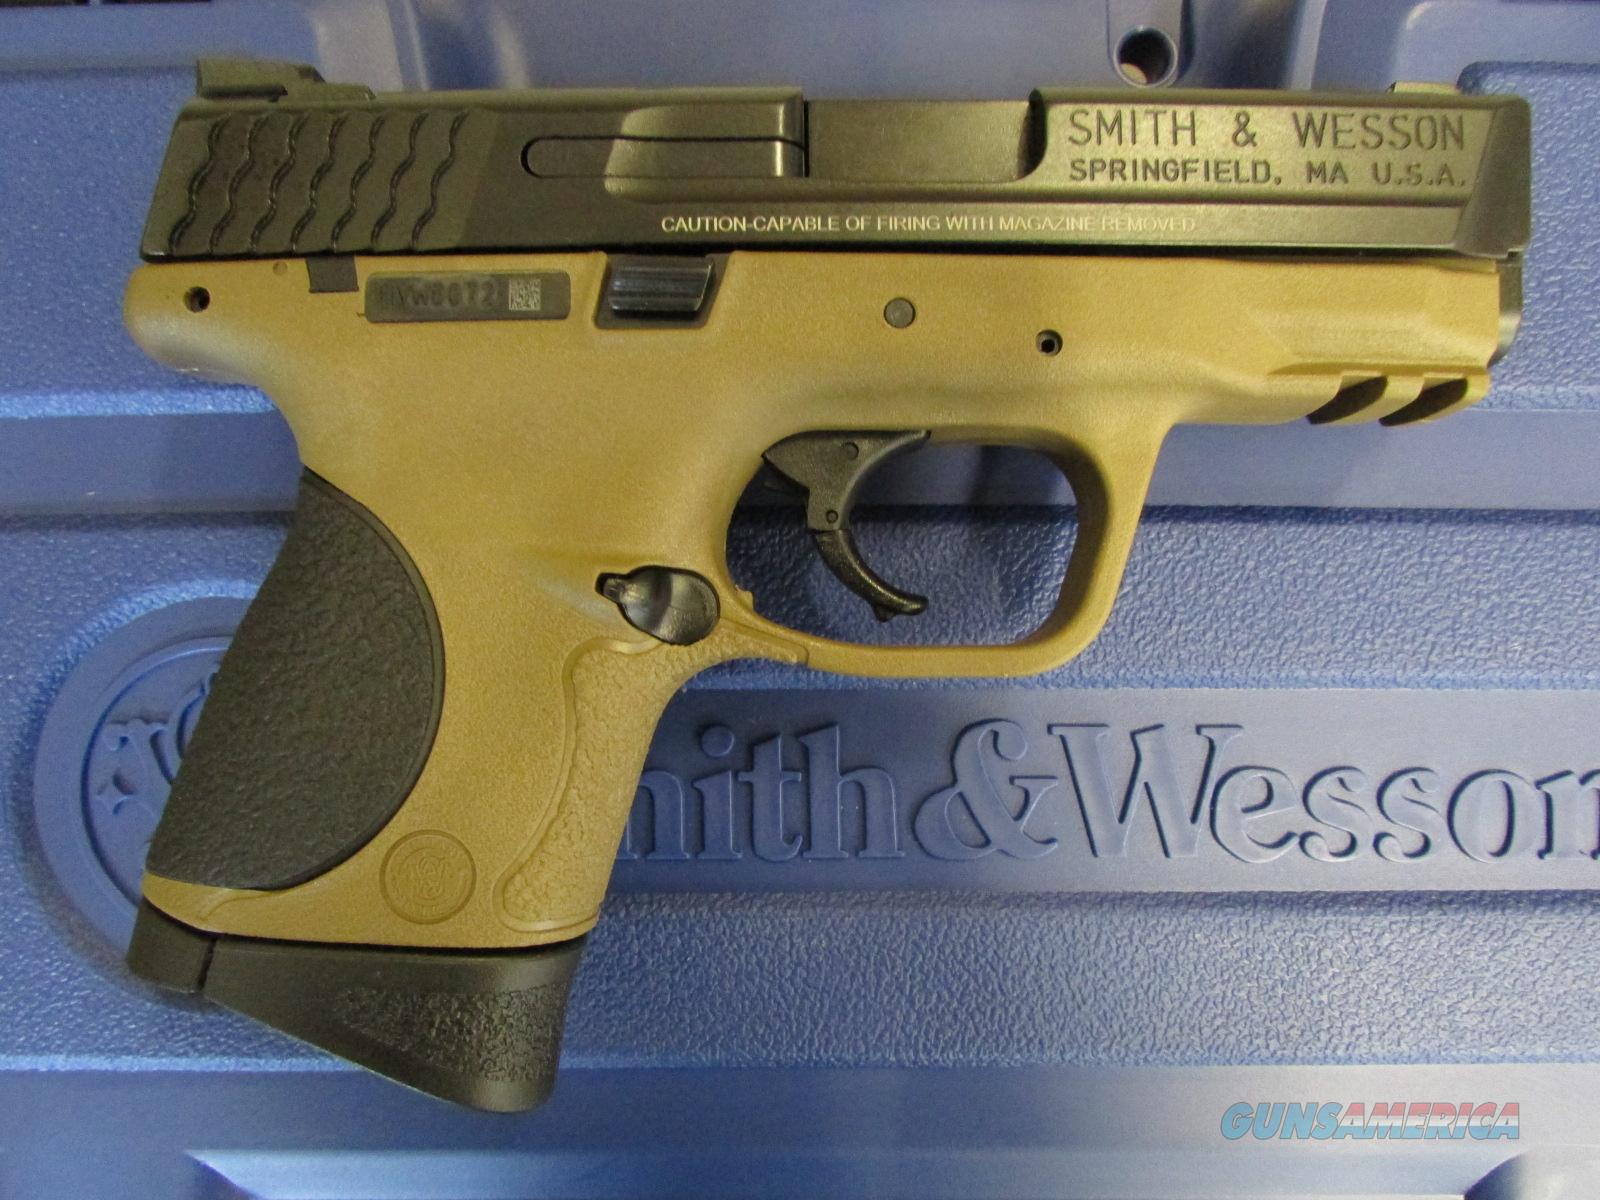 Smith & Wesson M&P40c Compact Flat Dark Earth .40 S&W 10190  Guns > Pistols > Smith & Wesson Pistols - Autos > Polymer Frame